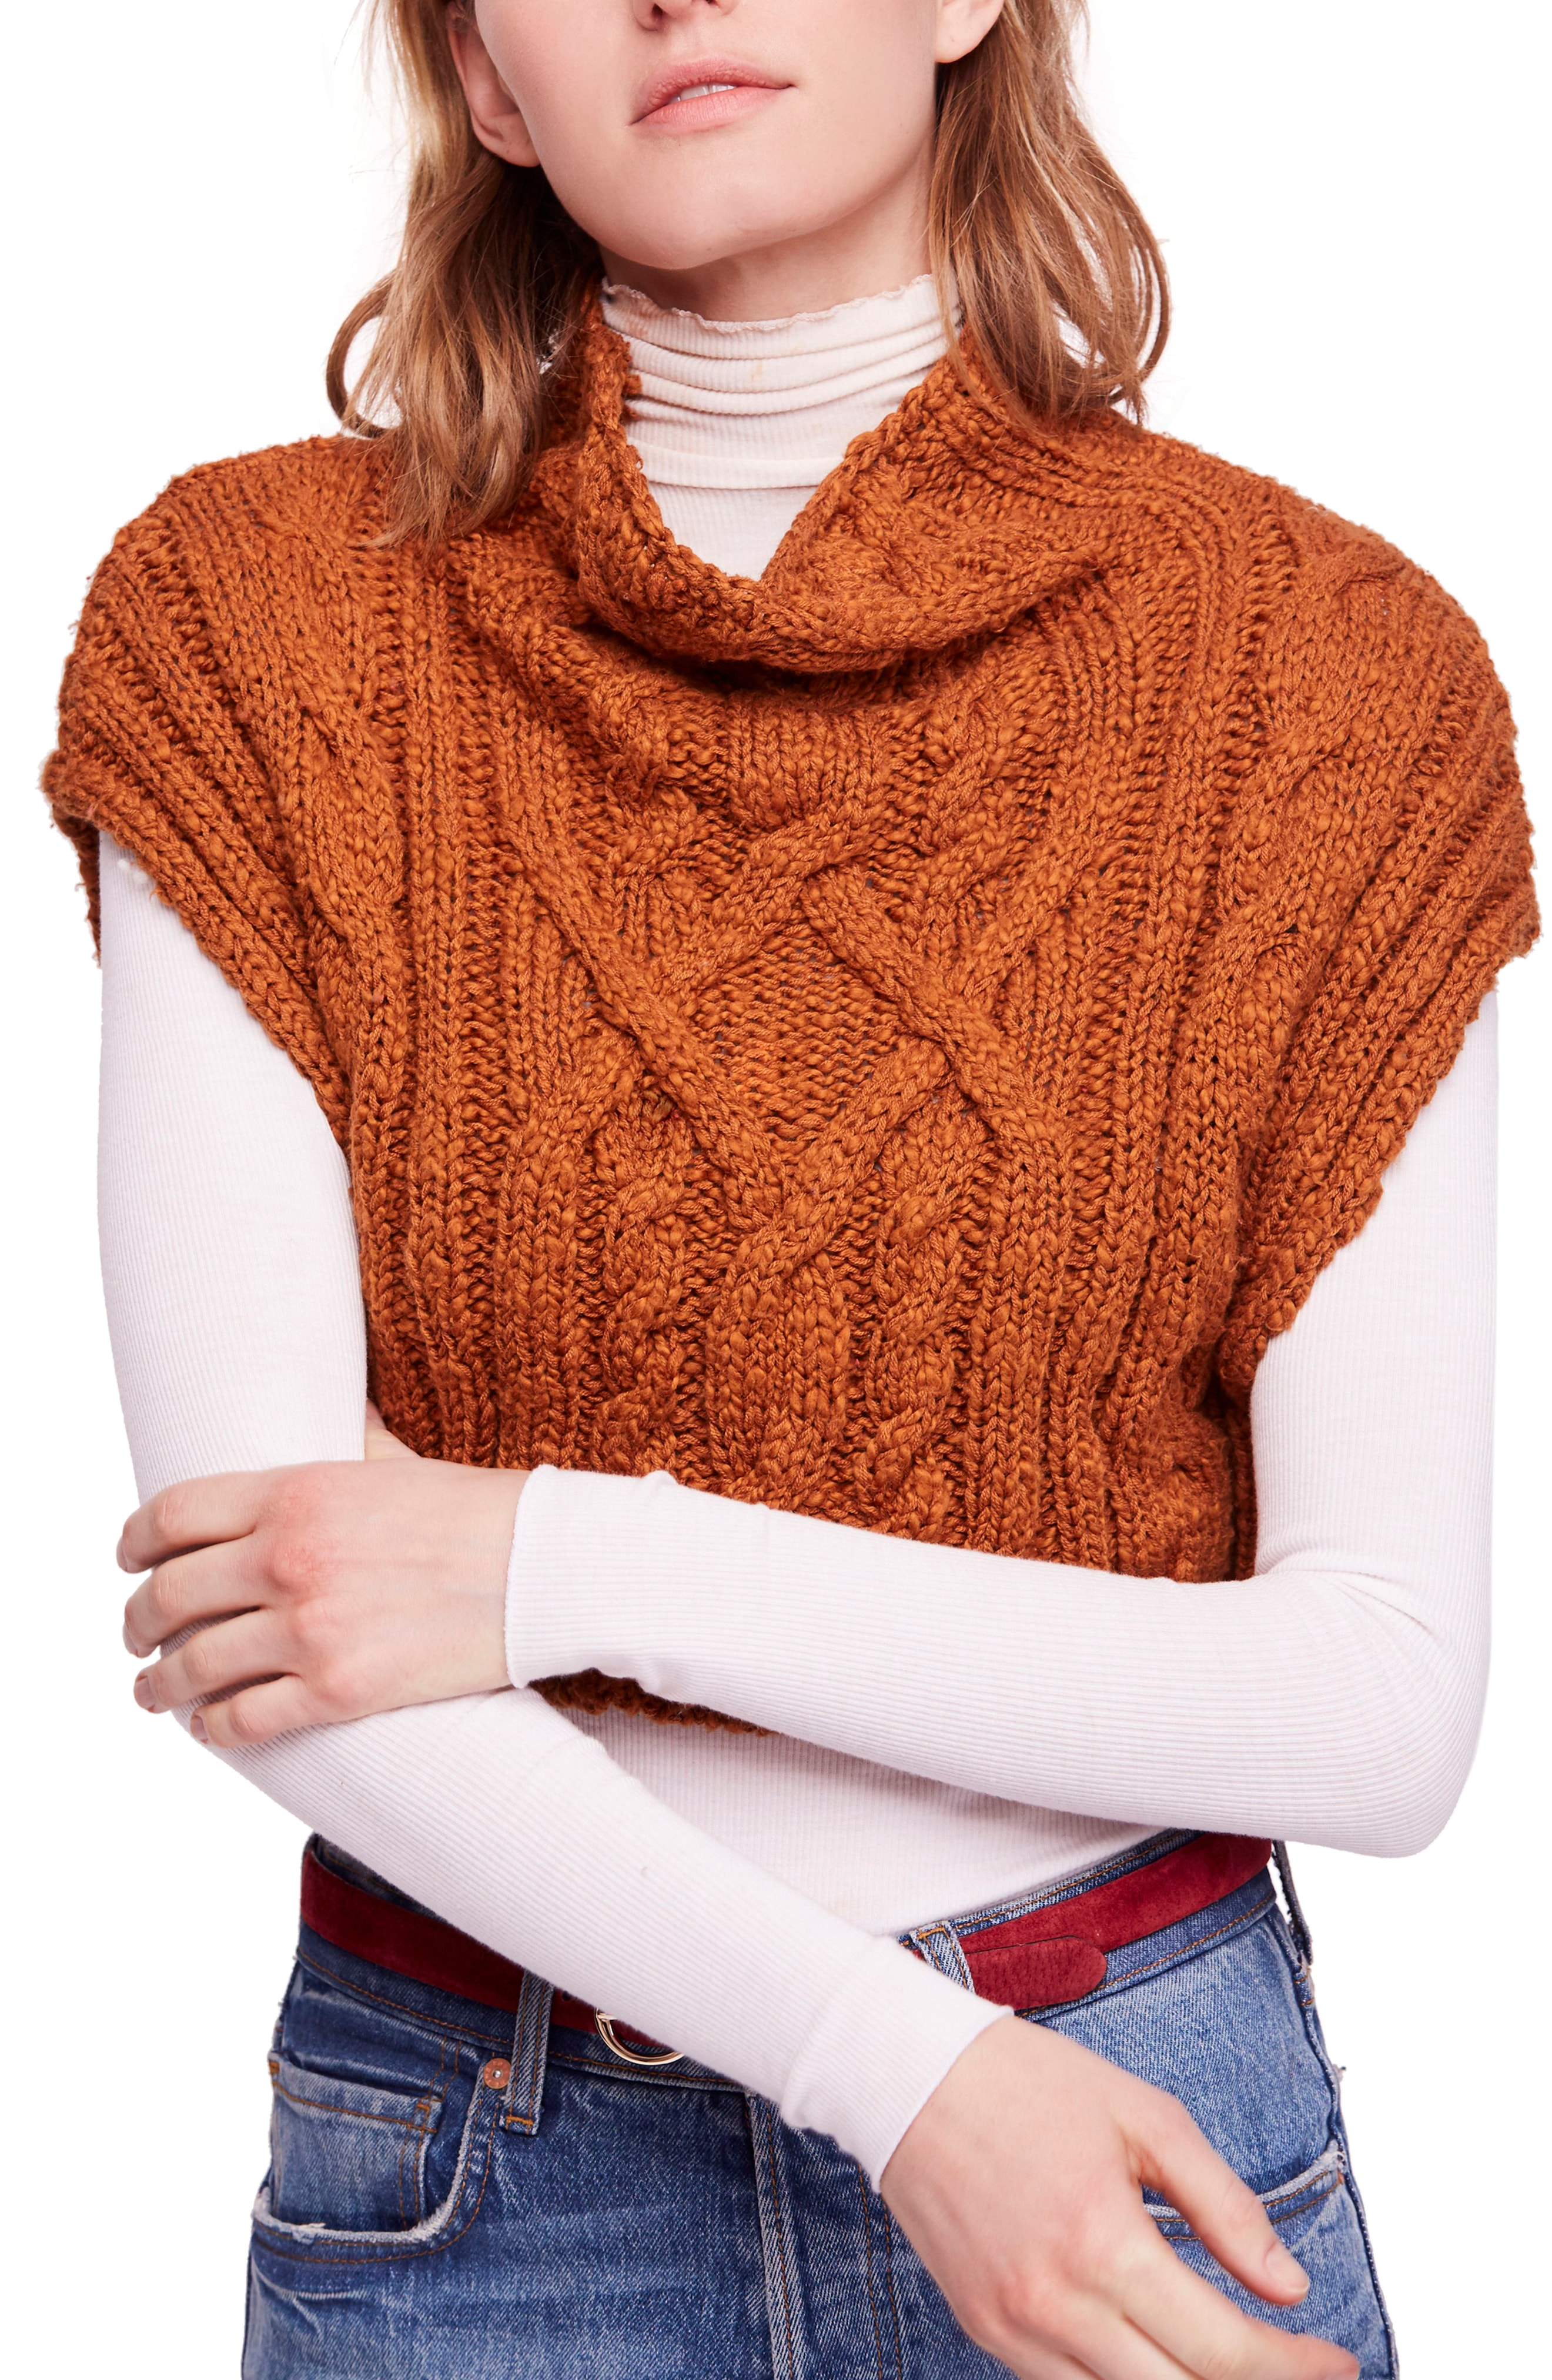 Free People Frosted Cable Sweater Vest